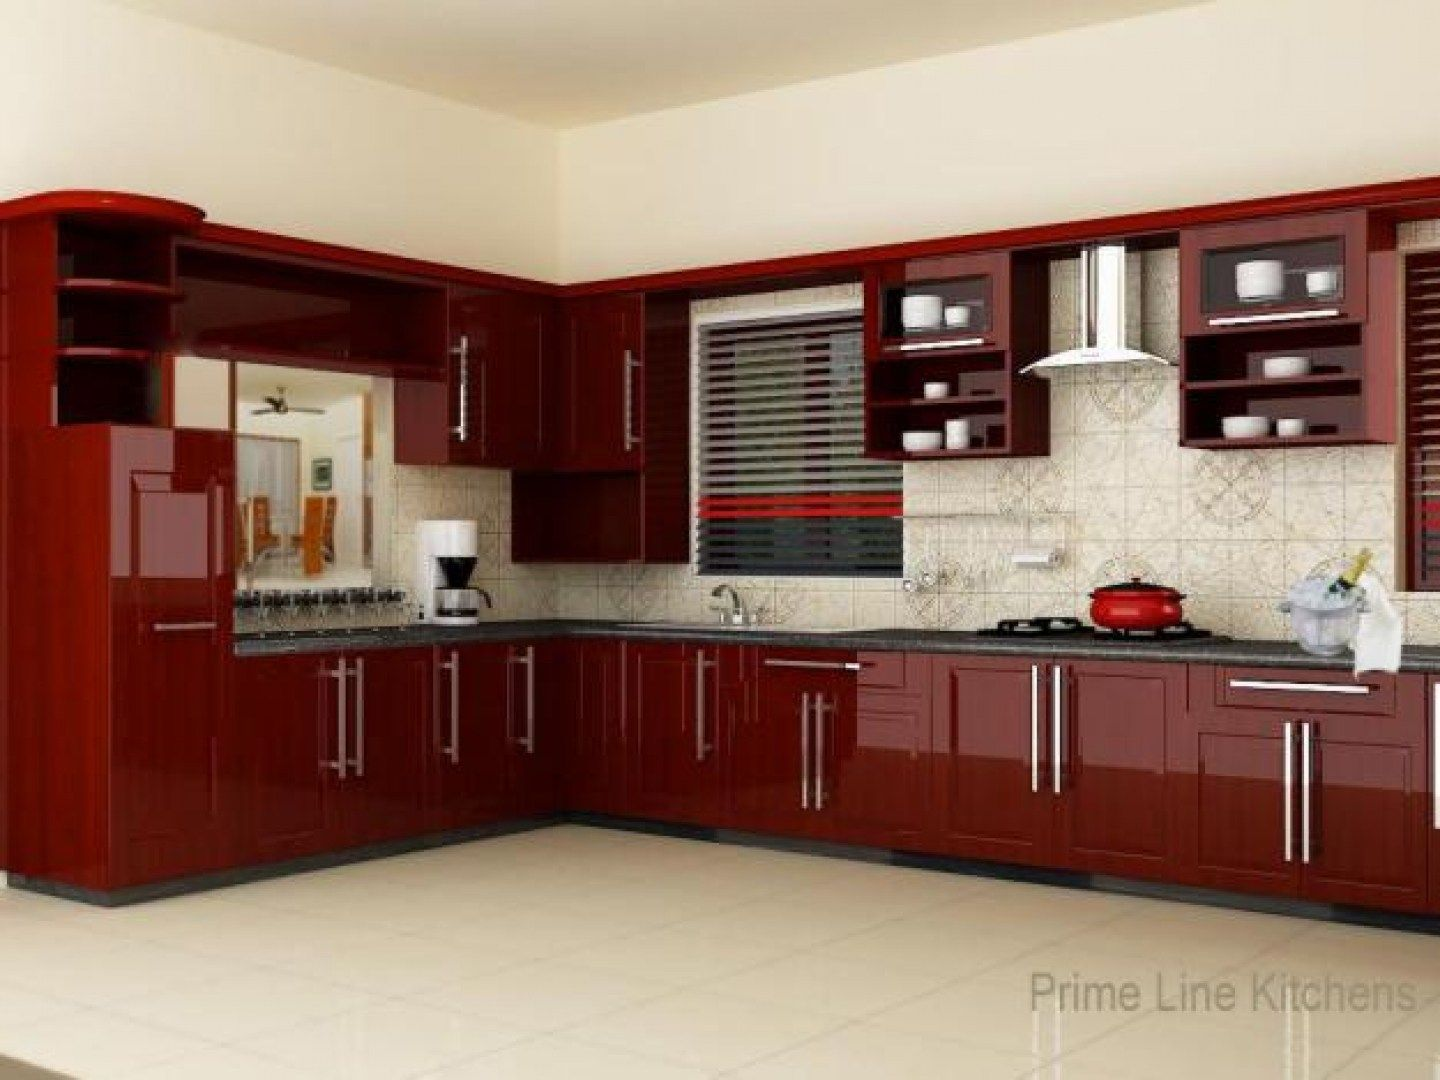 Kitchen design ideas kitchen woodwork designs hyderabad for Kitchen cabinets designs